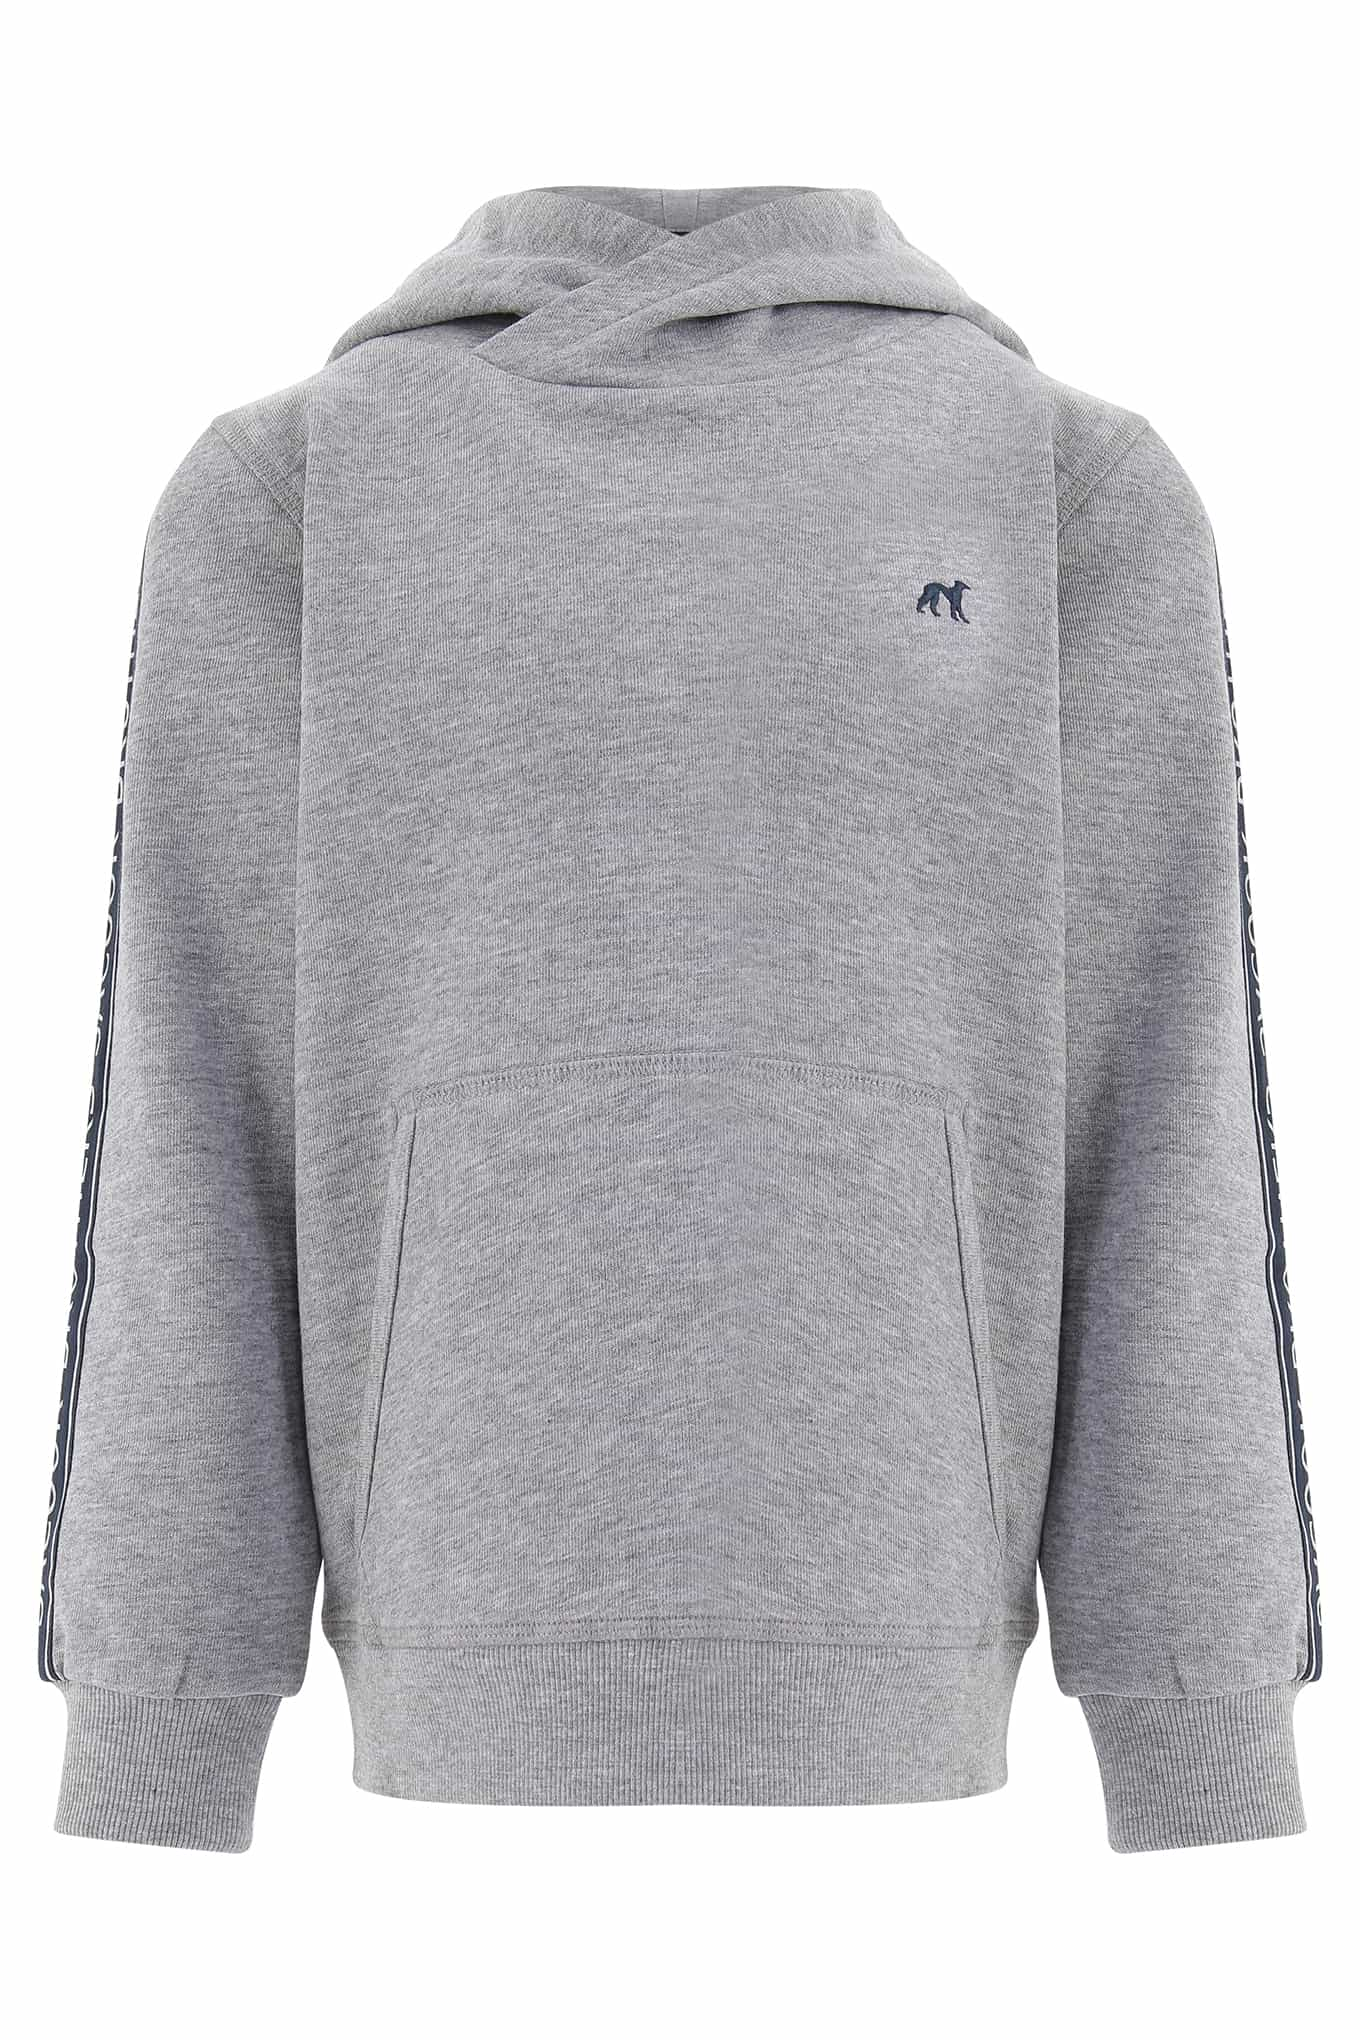 Sweatshirt Light Grey Sport Boy